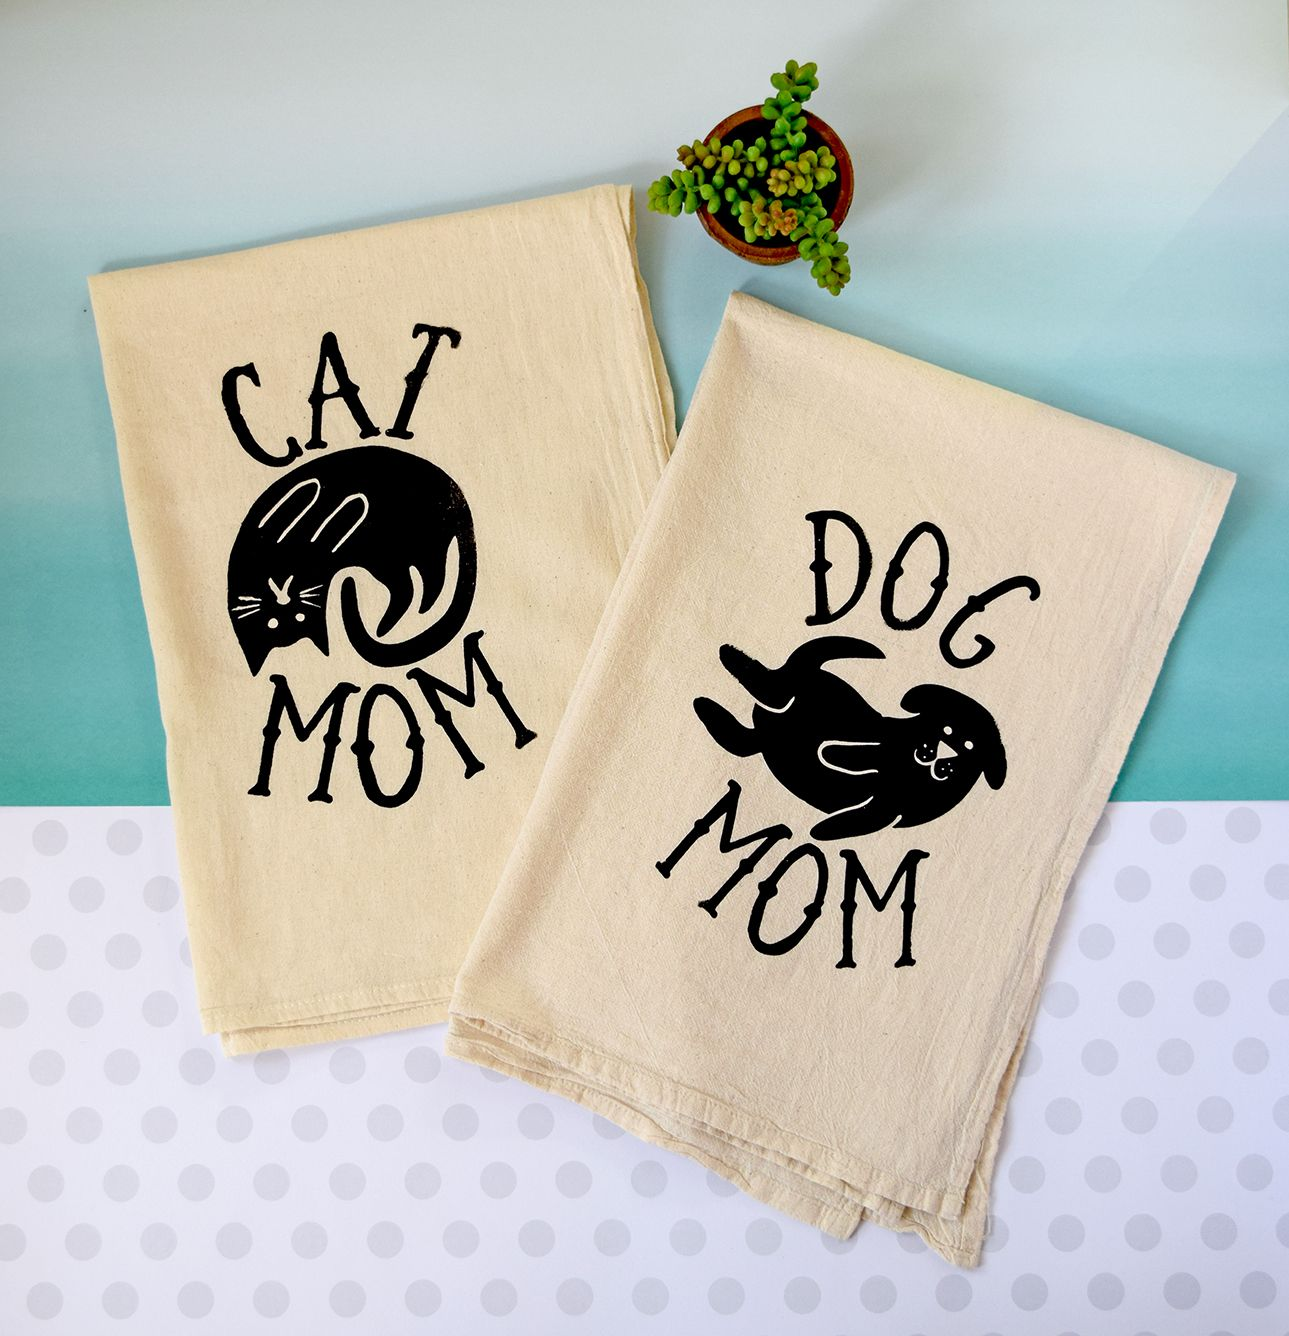 New Cat Mom & Dog Mom screen printed tea towel. These make